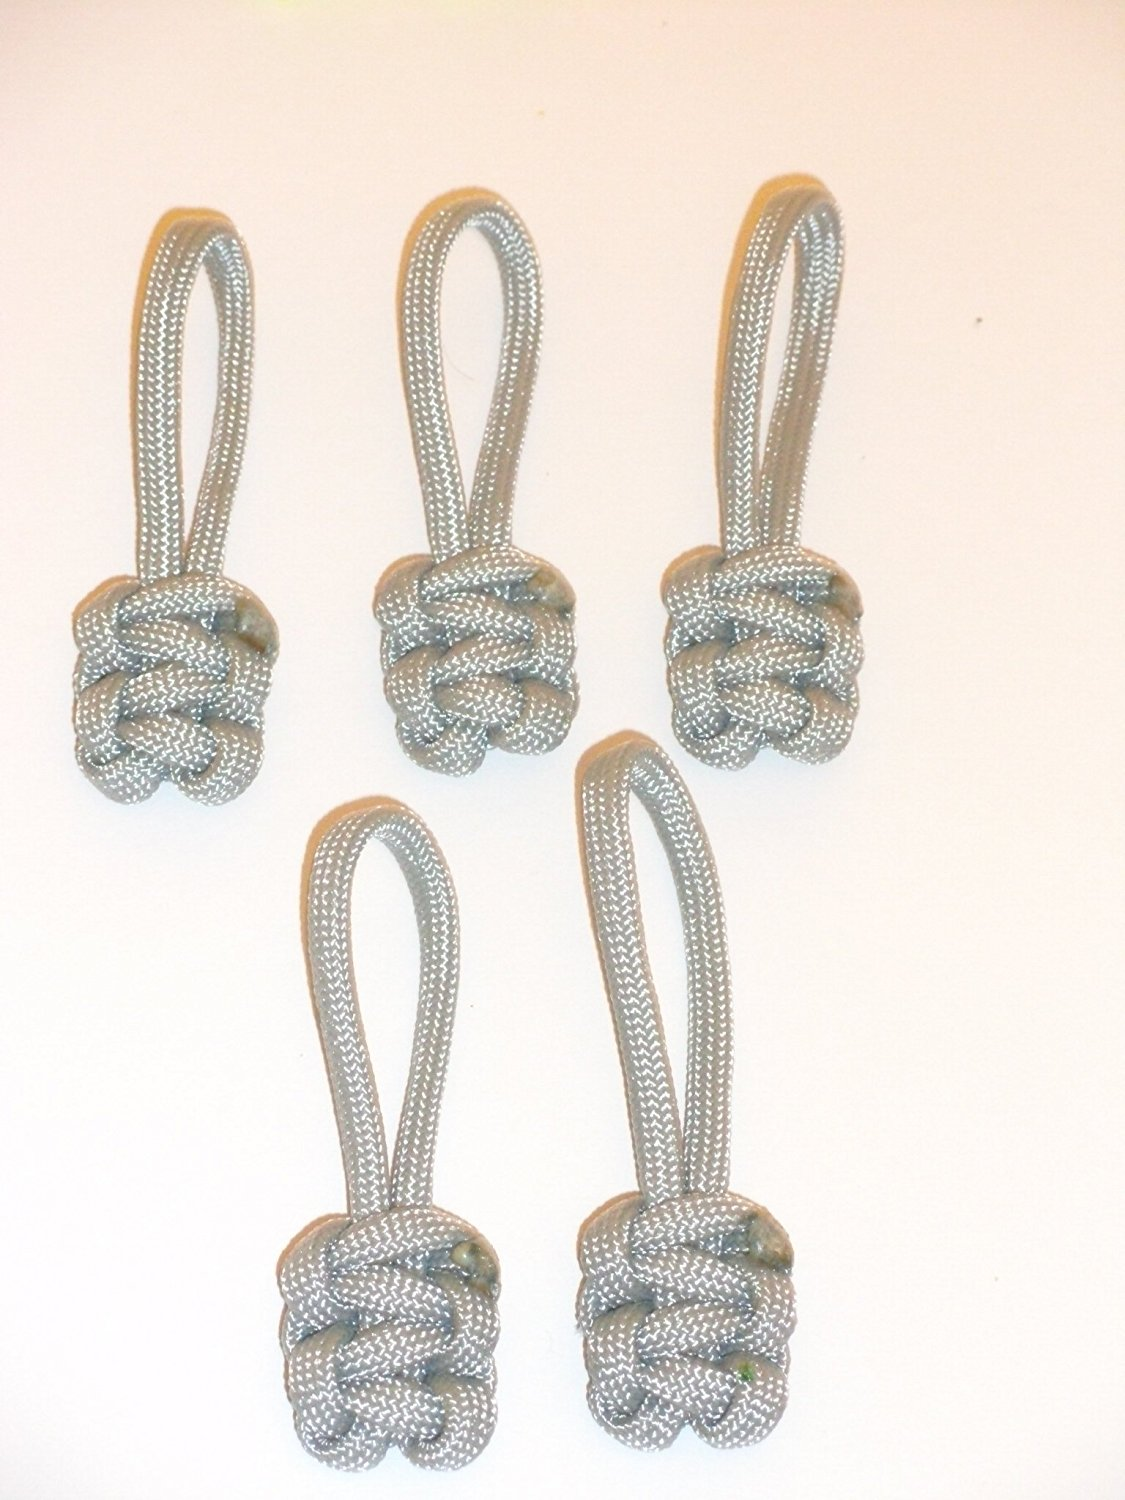 RedVex Paracord Zipper Pulls / Lanyards - Lot of 5 - ~2.5 - Gray